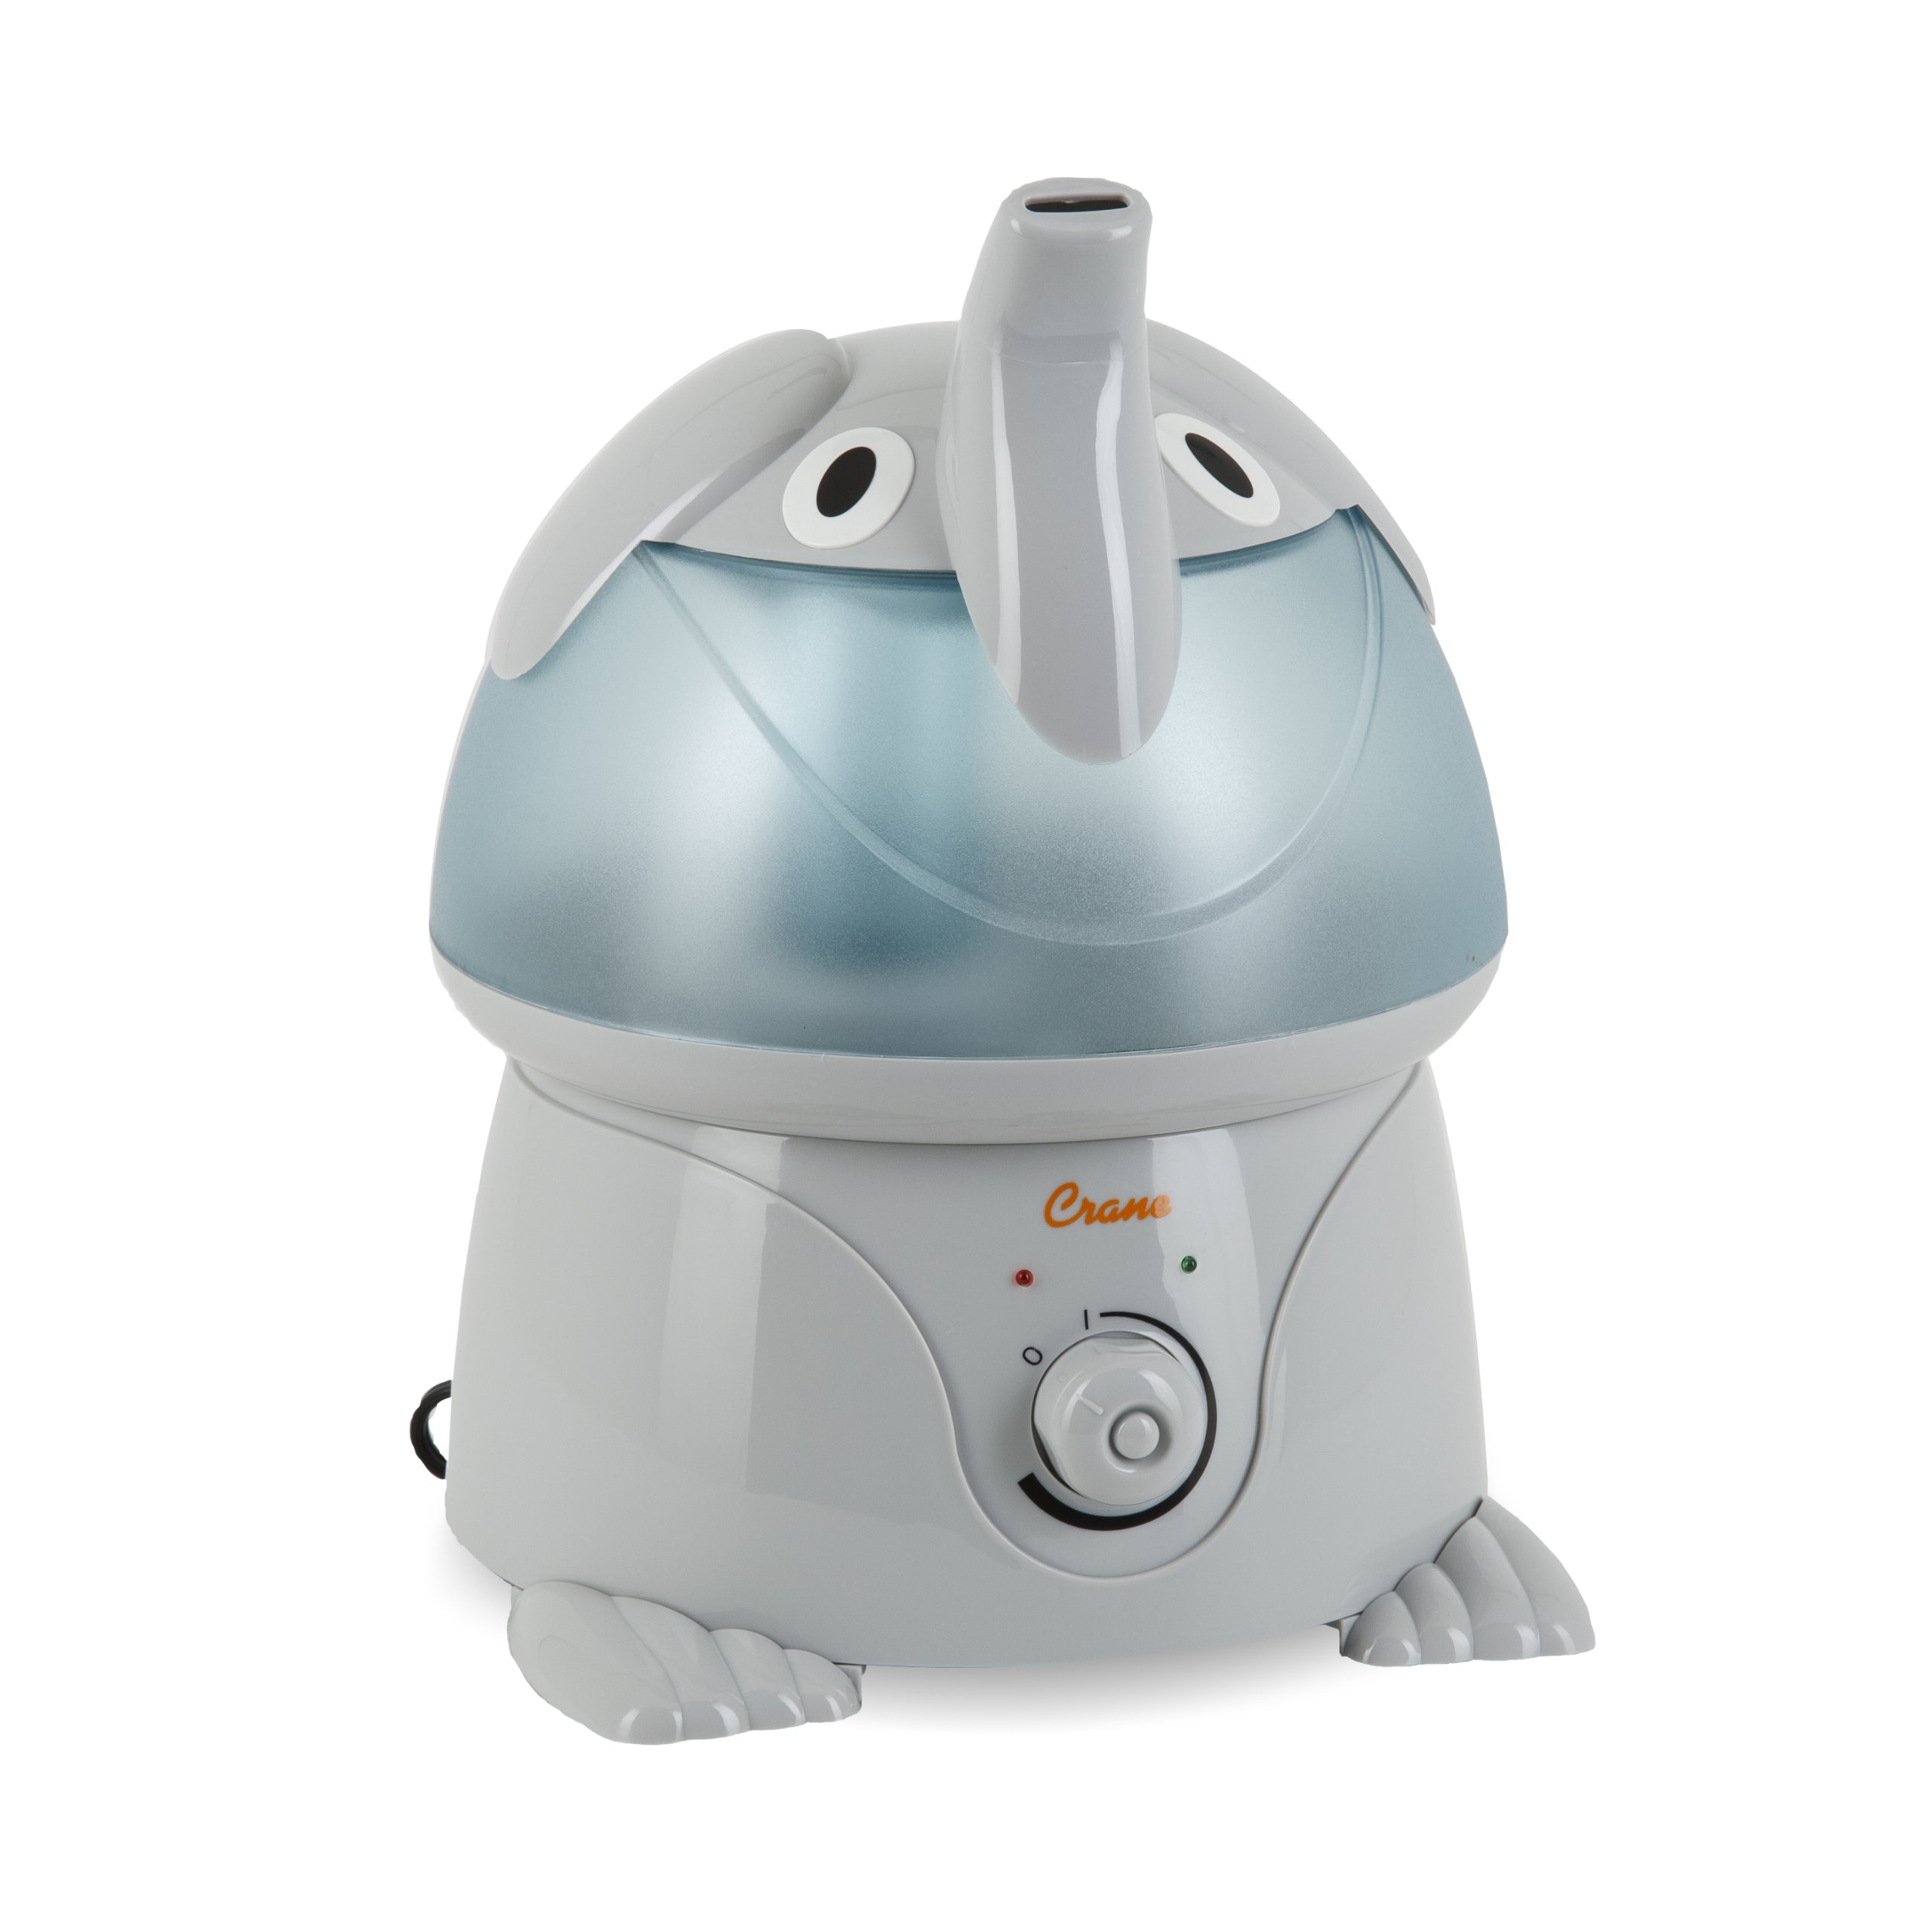 Crane Filter-Free Cool Mist Humidifiers for Kids, Elephant by Crane